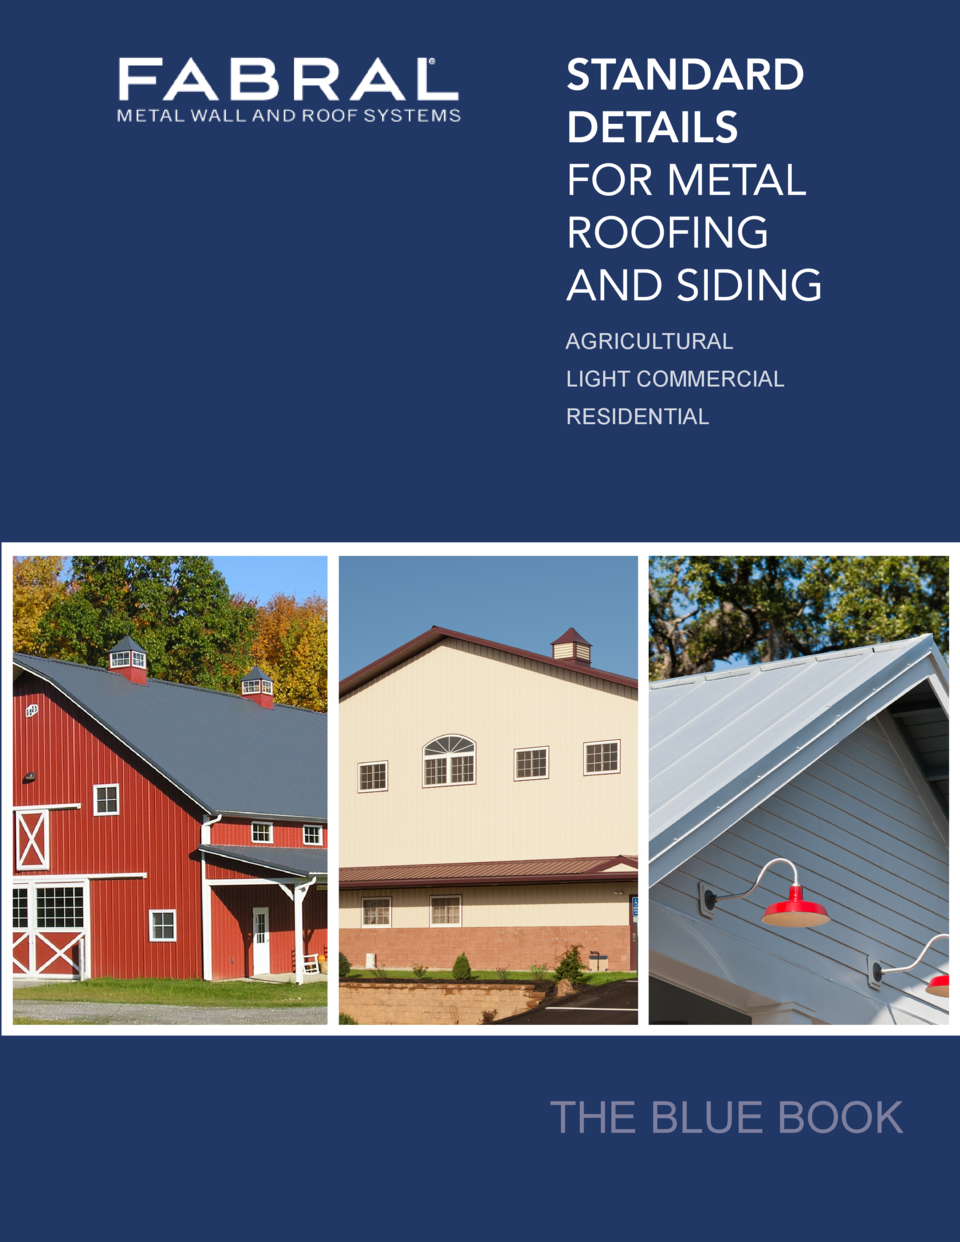 STANDARD DETAILS FOR METAL ROOFING AND SIDING AGRICULTURAL LIGHT COMMERCIAL RESIDENTIAL  THE BLUE BOOK